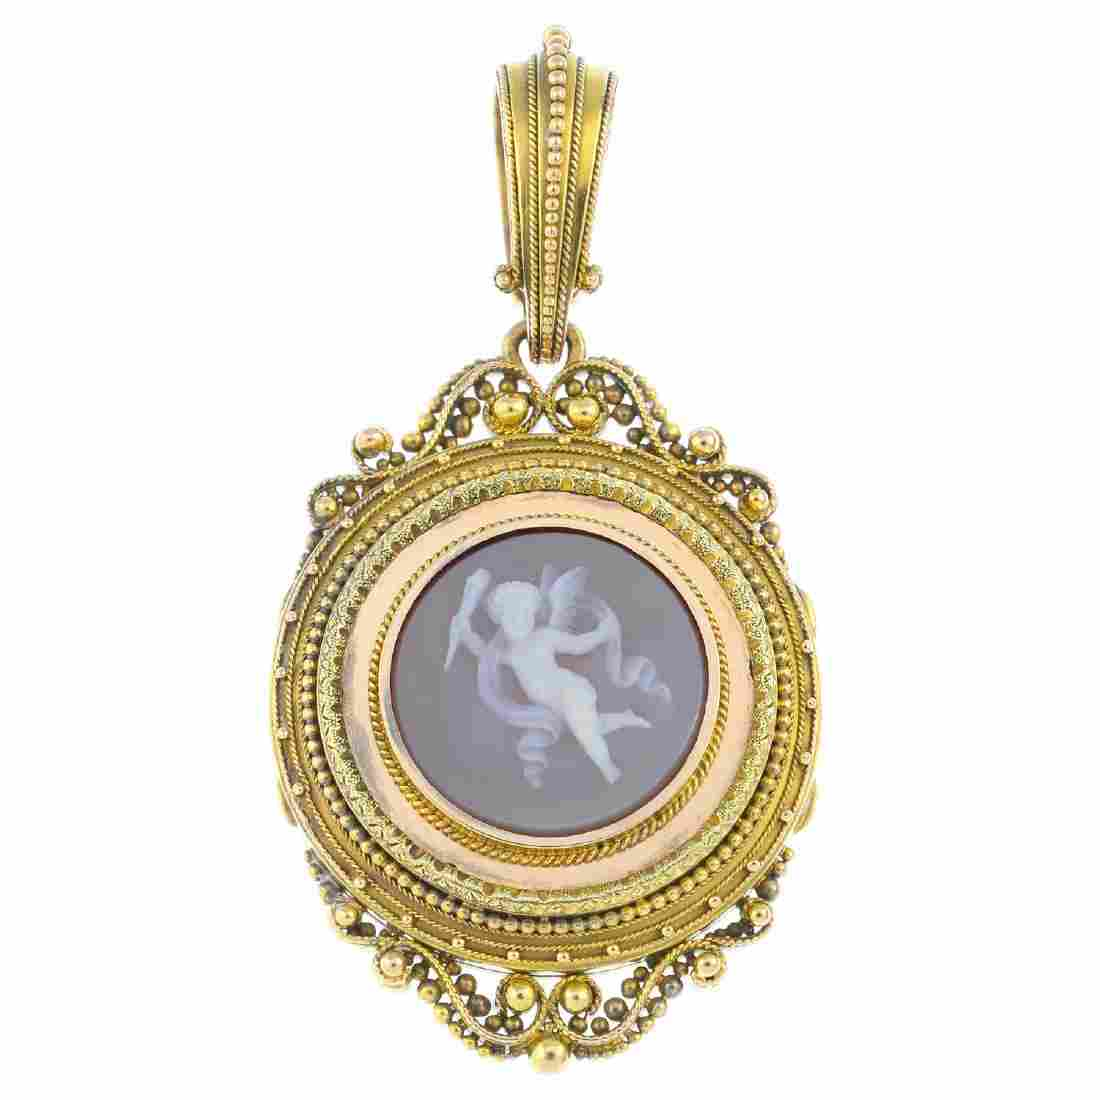 A mid Victorian gold agate cameo pendant. The sardonyx